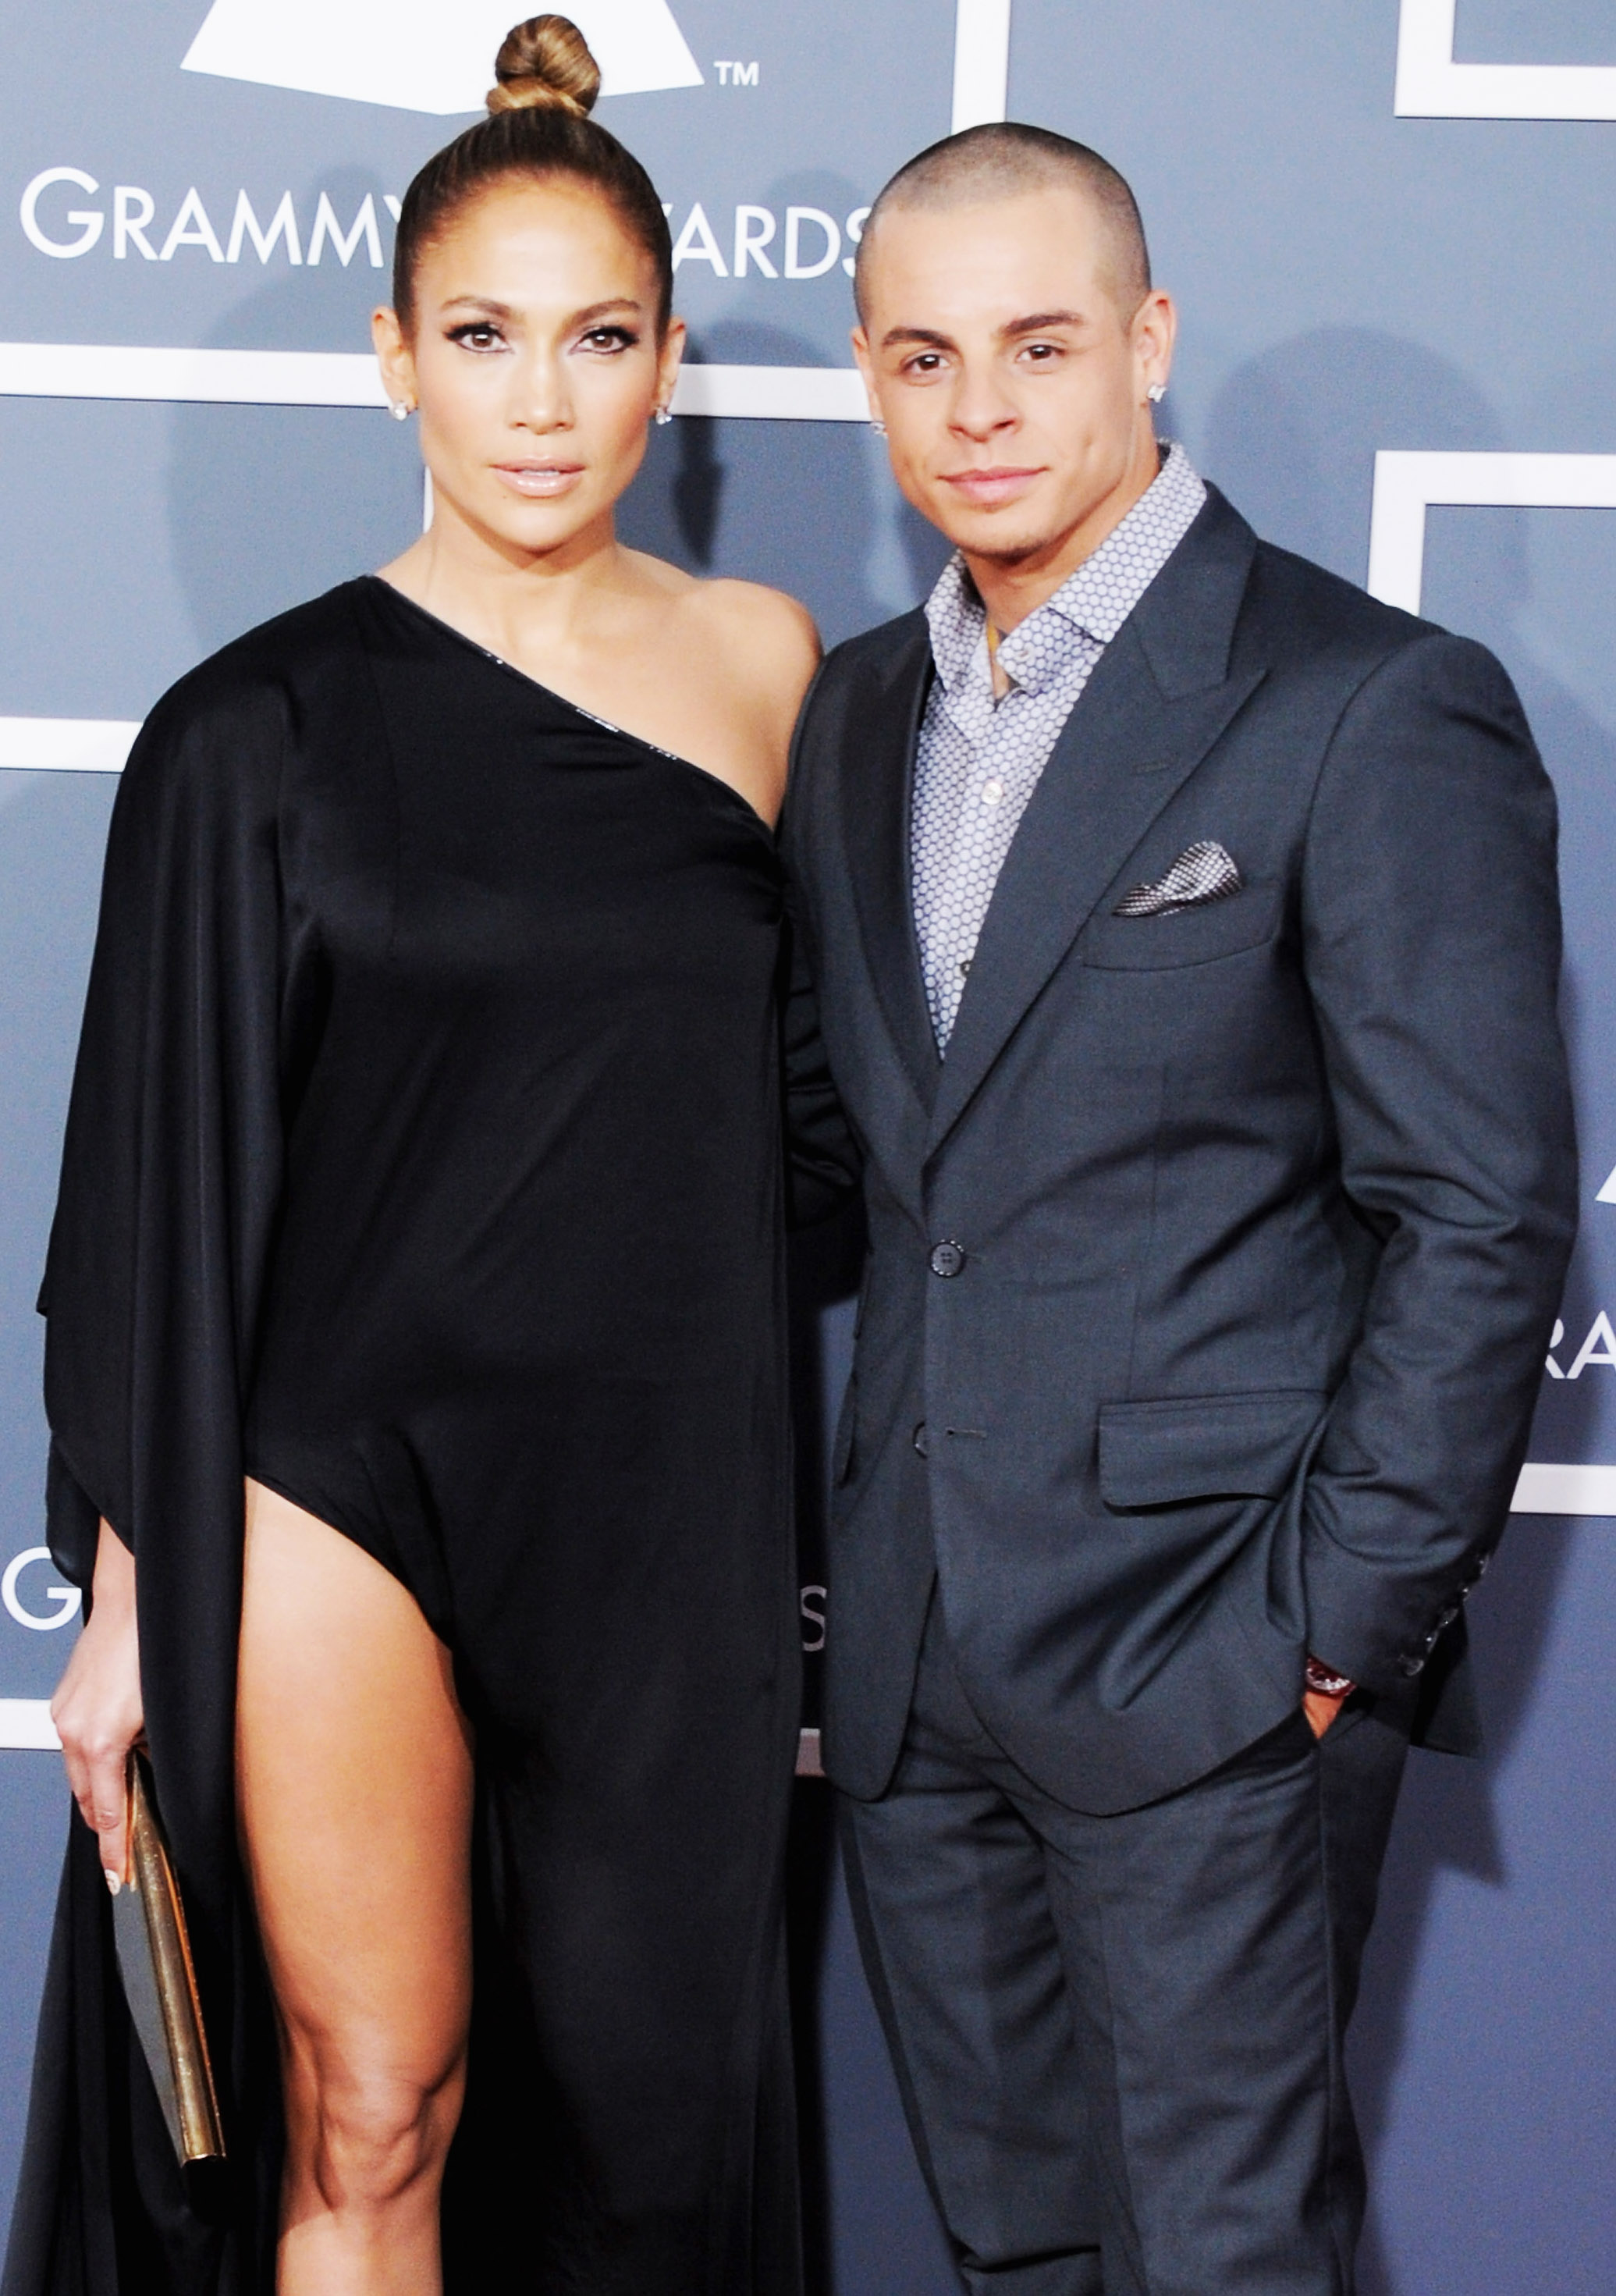 LOS ANGELES, CA - FEBRUARY 10: Singer/Actress Jennifer Lopez and Casper Smart arrive at The 55th Annual GRAMMY Awards at Staples Center on February 10, 2013 in Los Angeles, California. (Photo by Jon Kopaloff/FilmMagic)